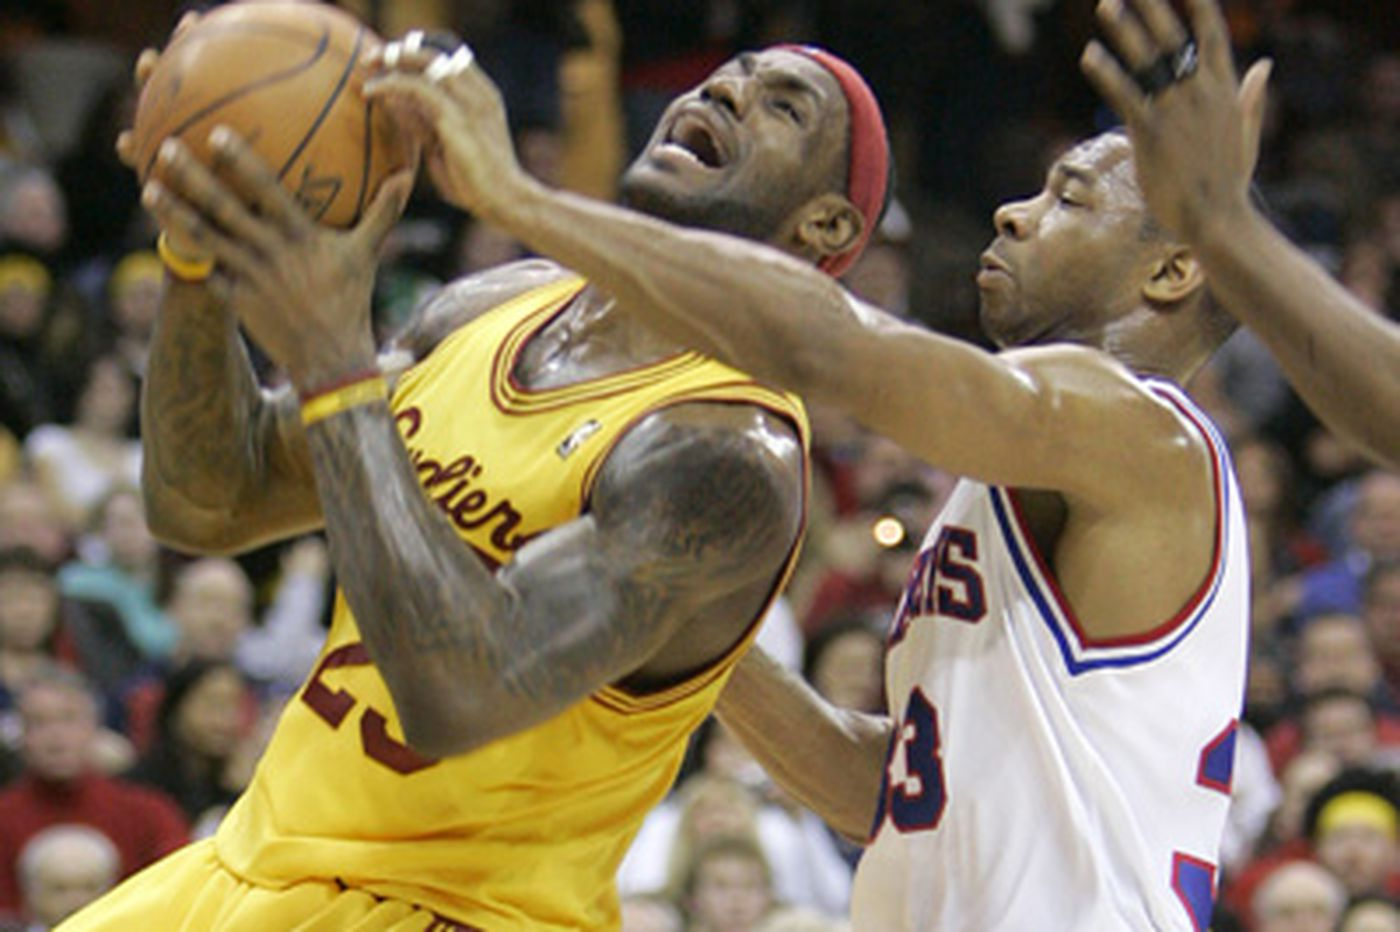 Sixers thumped by Cavs, 88-72